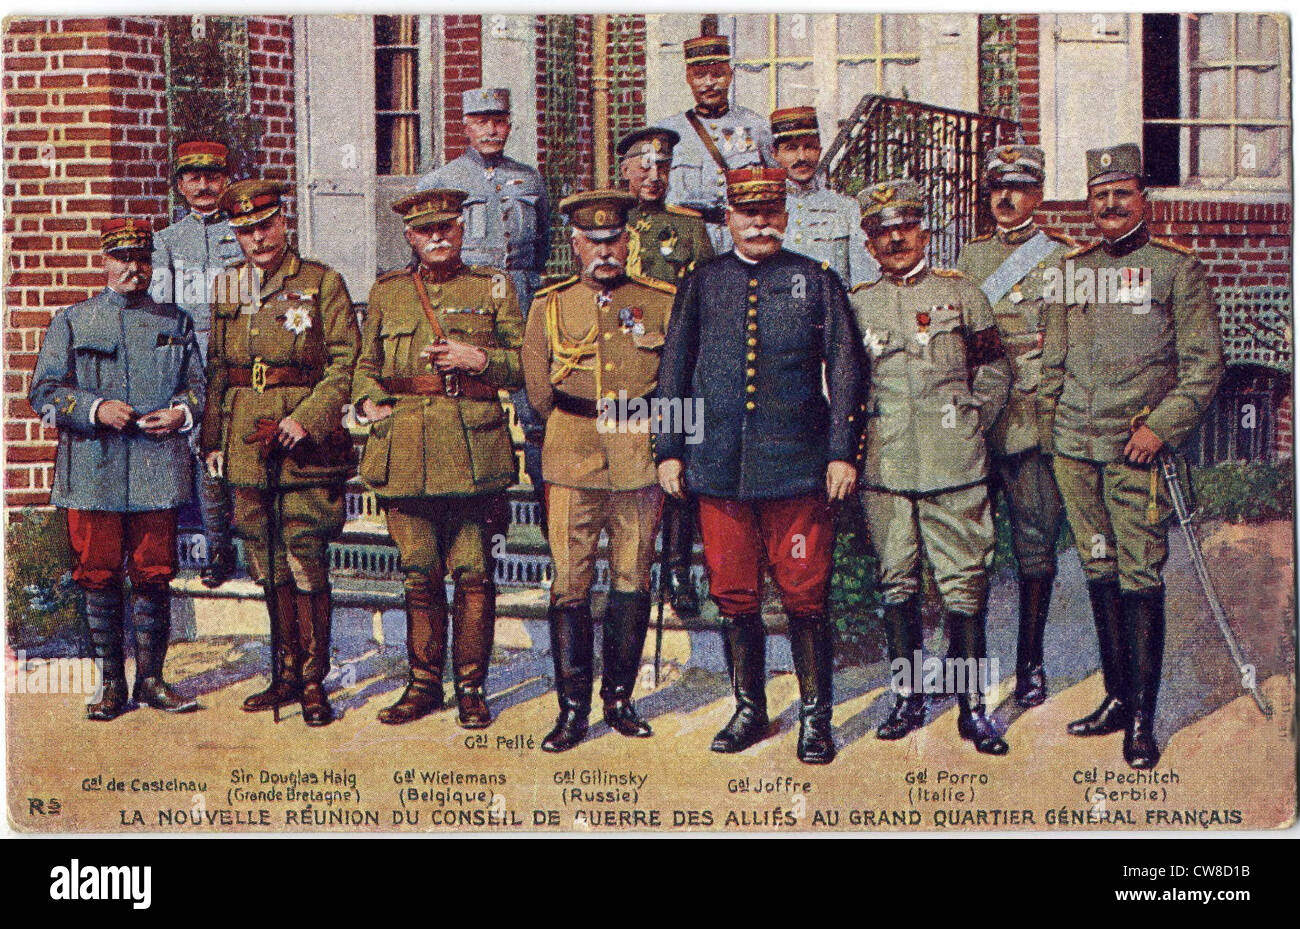 Meeting of the Allies' War Council - Stock Image